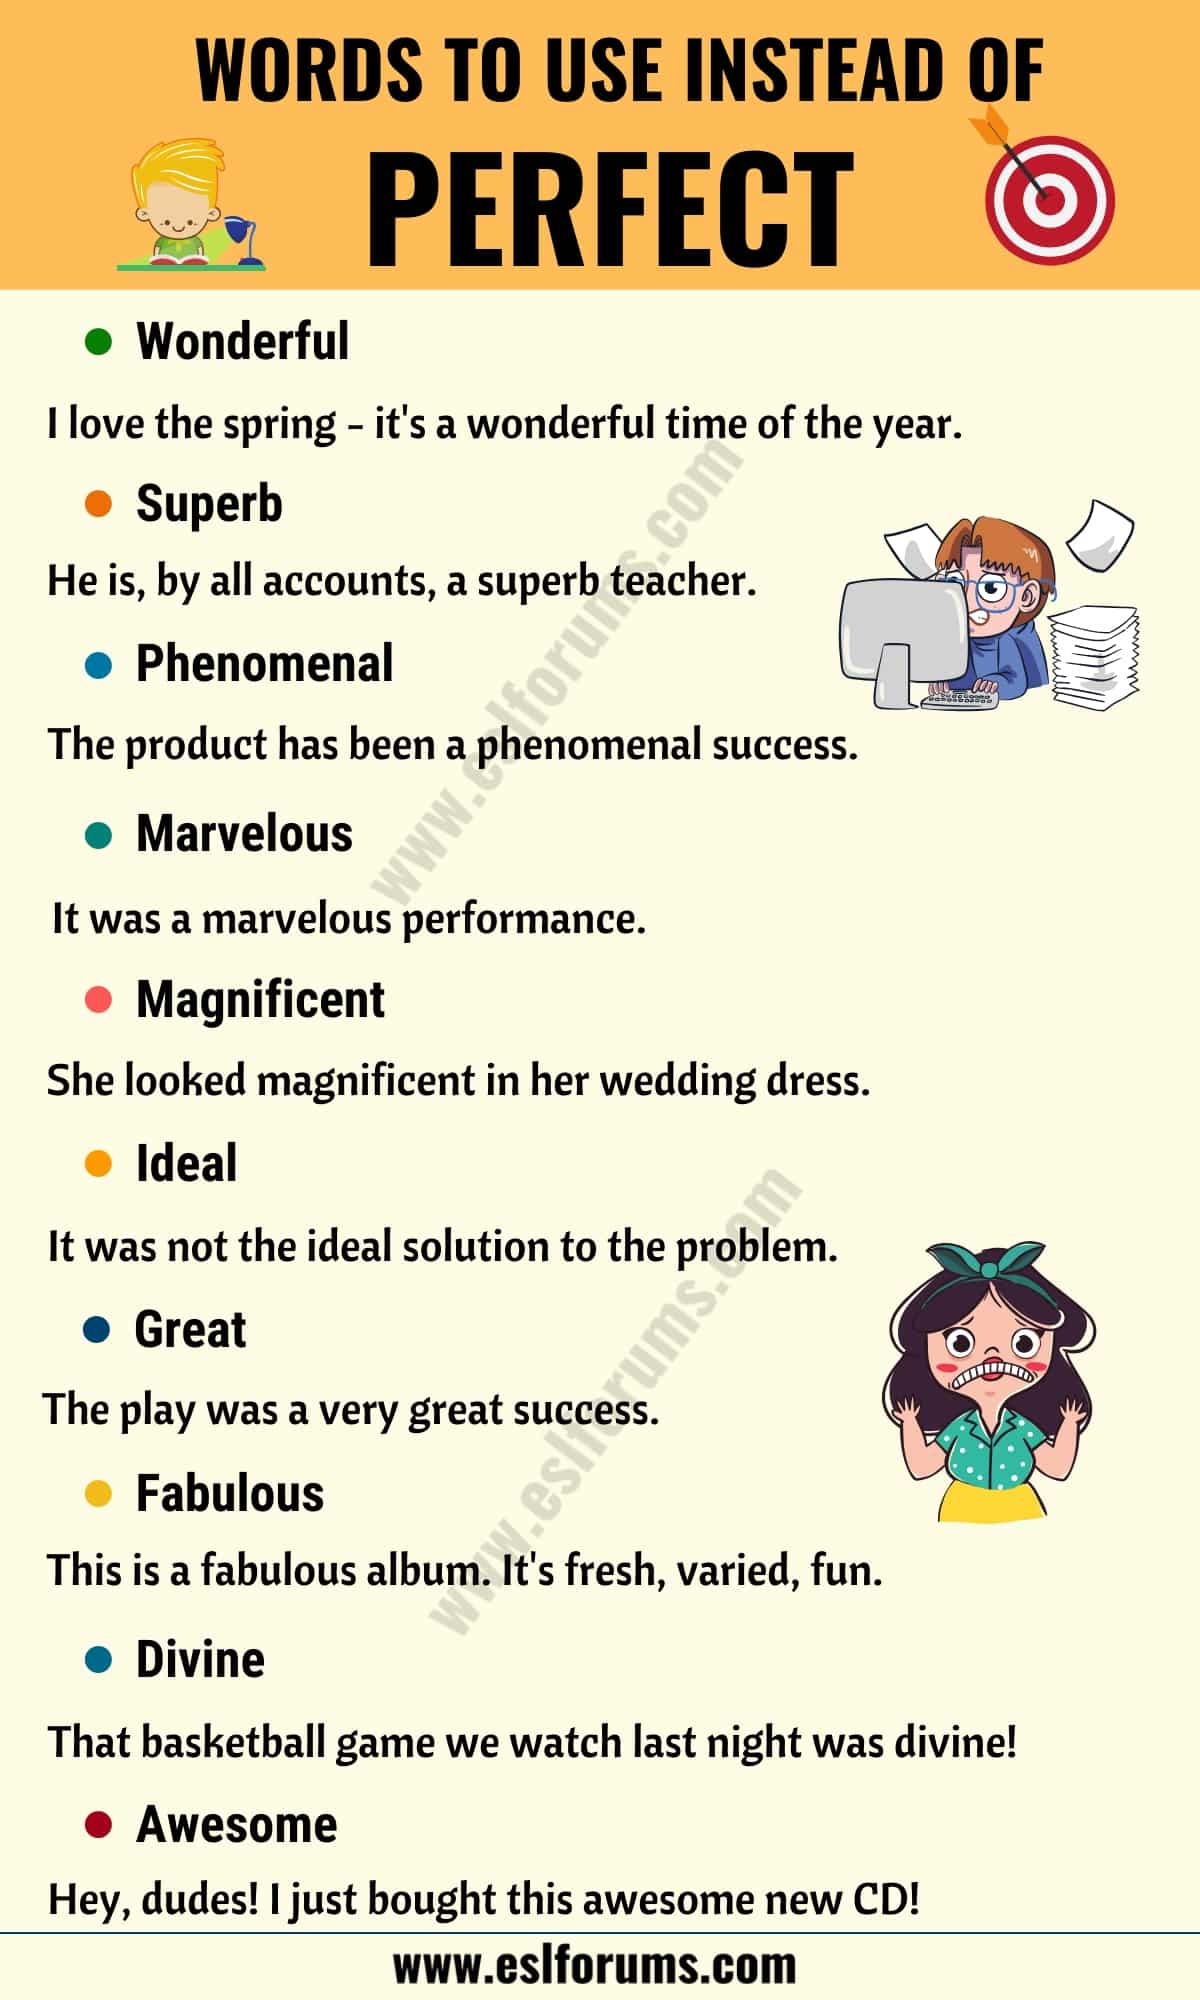 PERFECT Synonym: List of 22 Synonyms for Perfect with Useful Examples